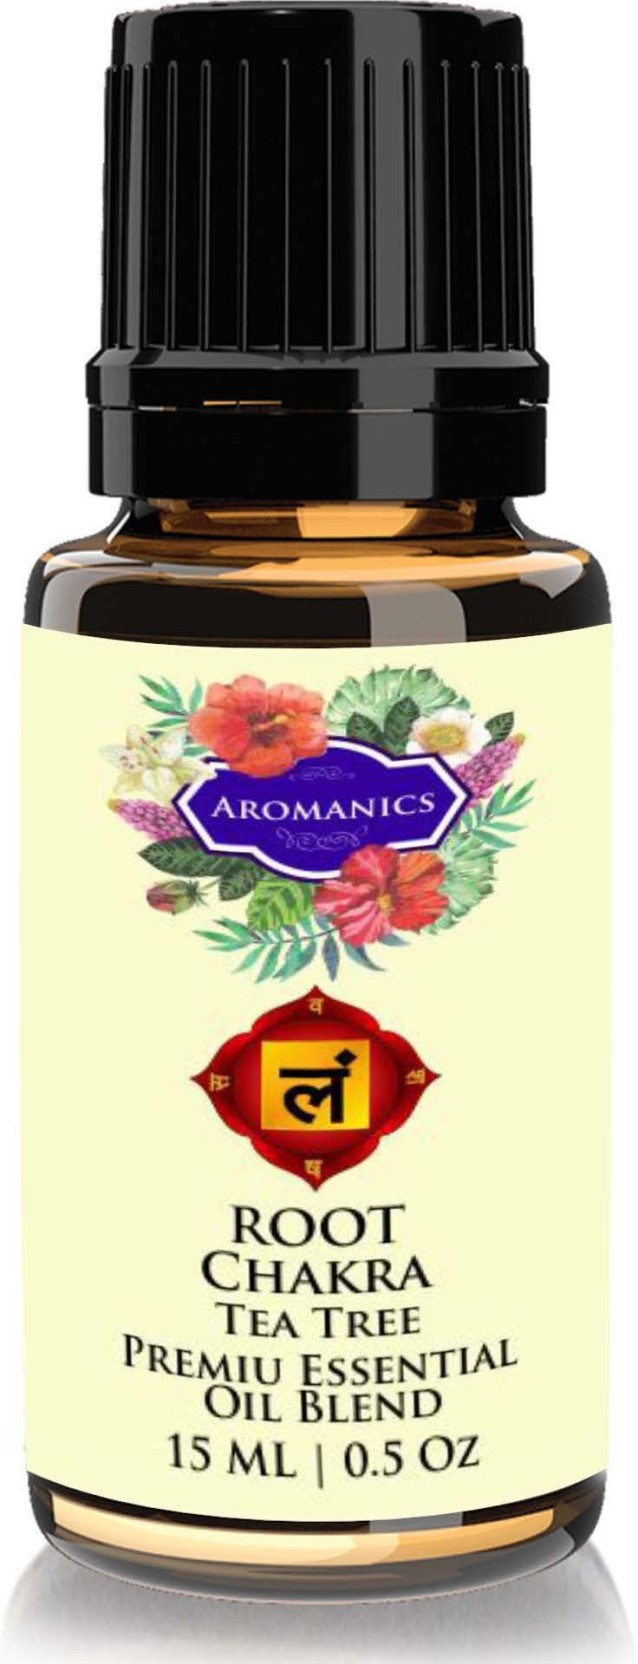 AROMANICS Root Chakra Essential Oil - 15 ML ( 100% PURE